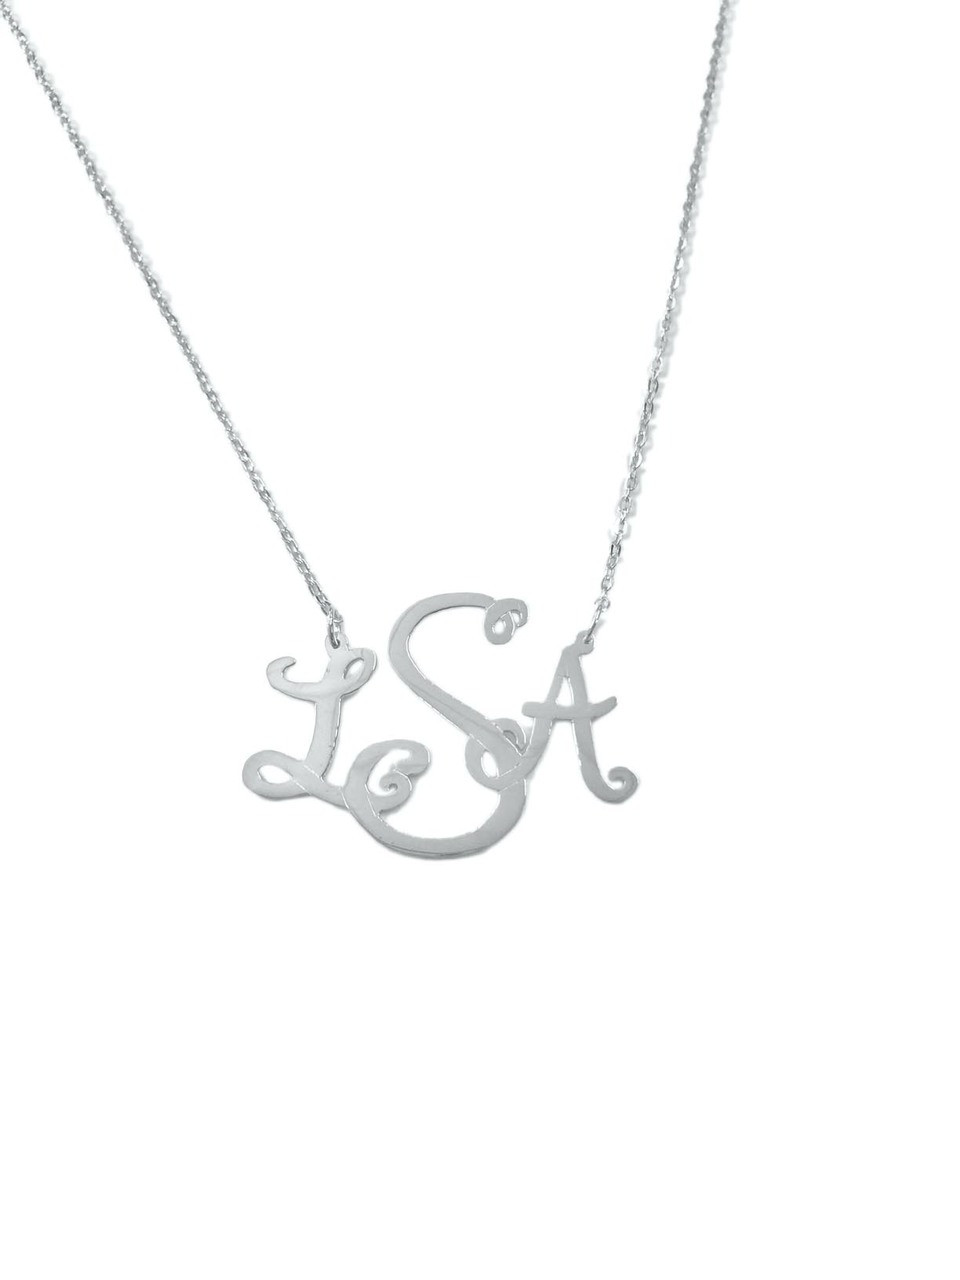 0d81e44f0 Avery Monogram Necklace. Price: $137.50. Image 1